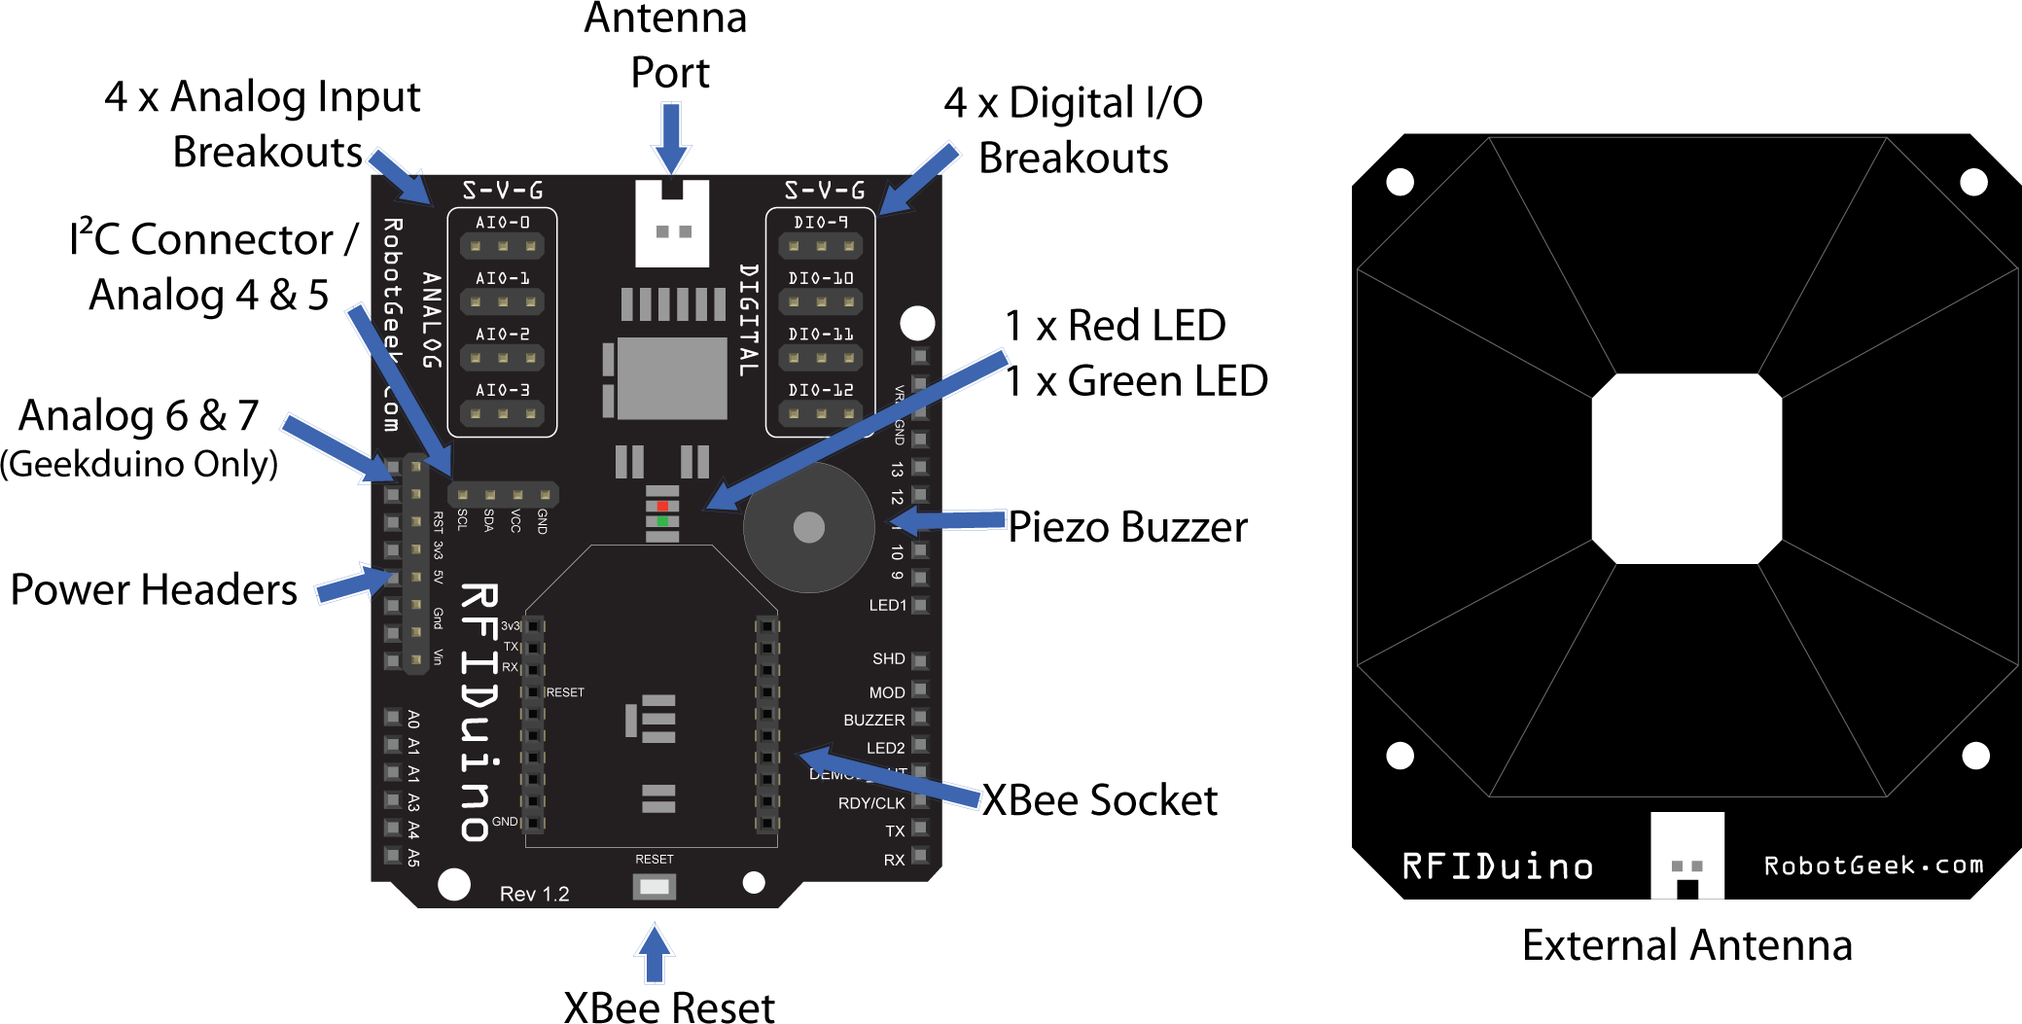 Familiarize Yourself With the RFIDuino